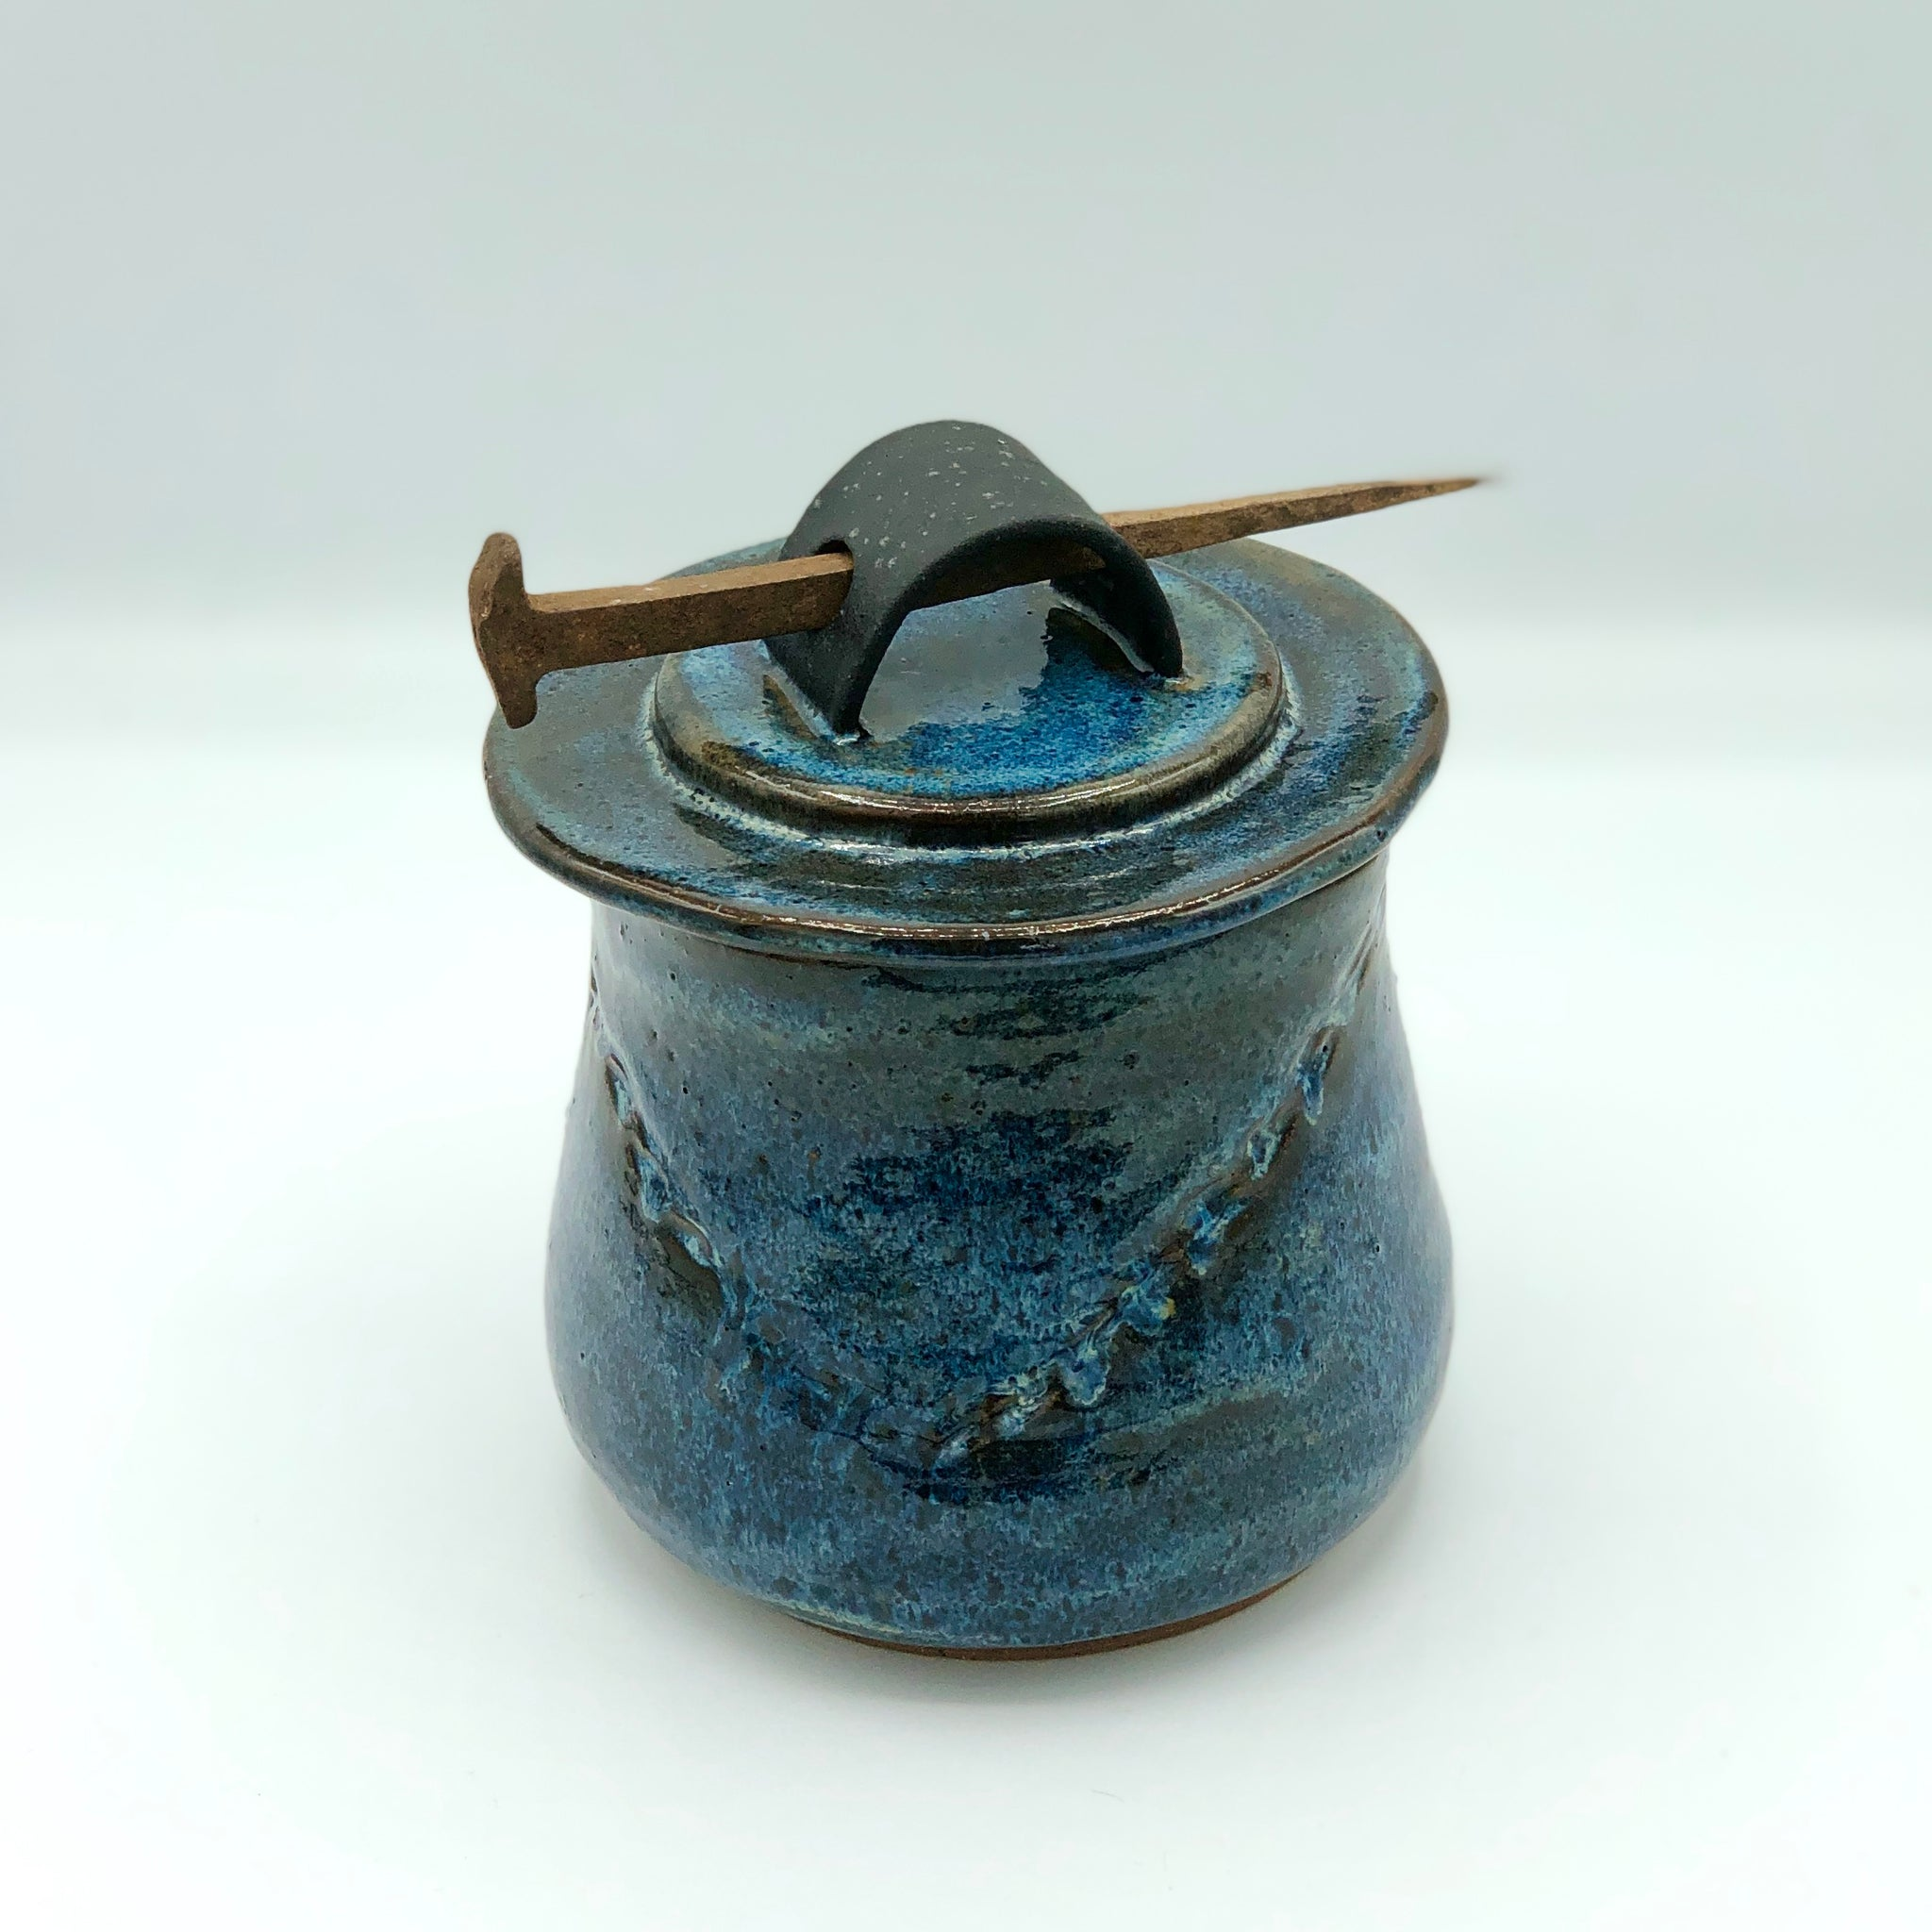 Lidded Jar with Antique Nail